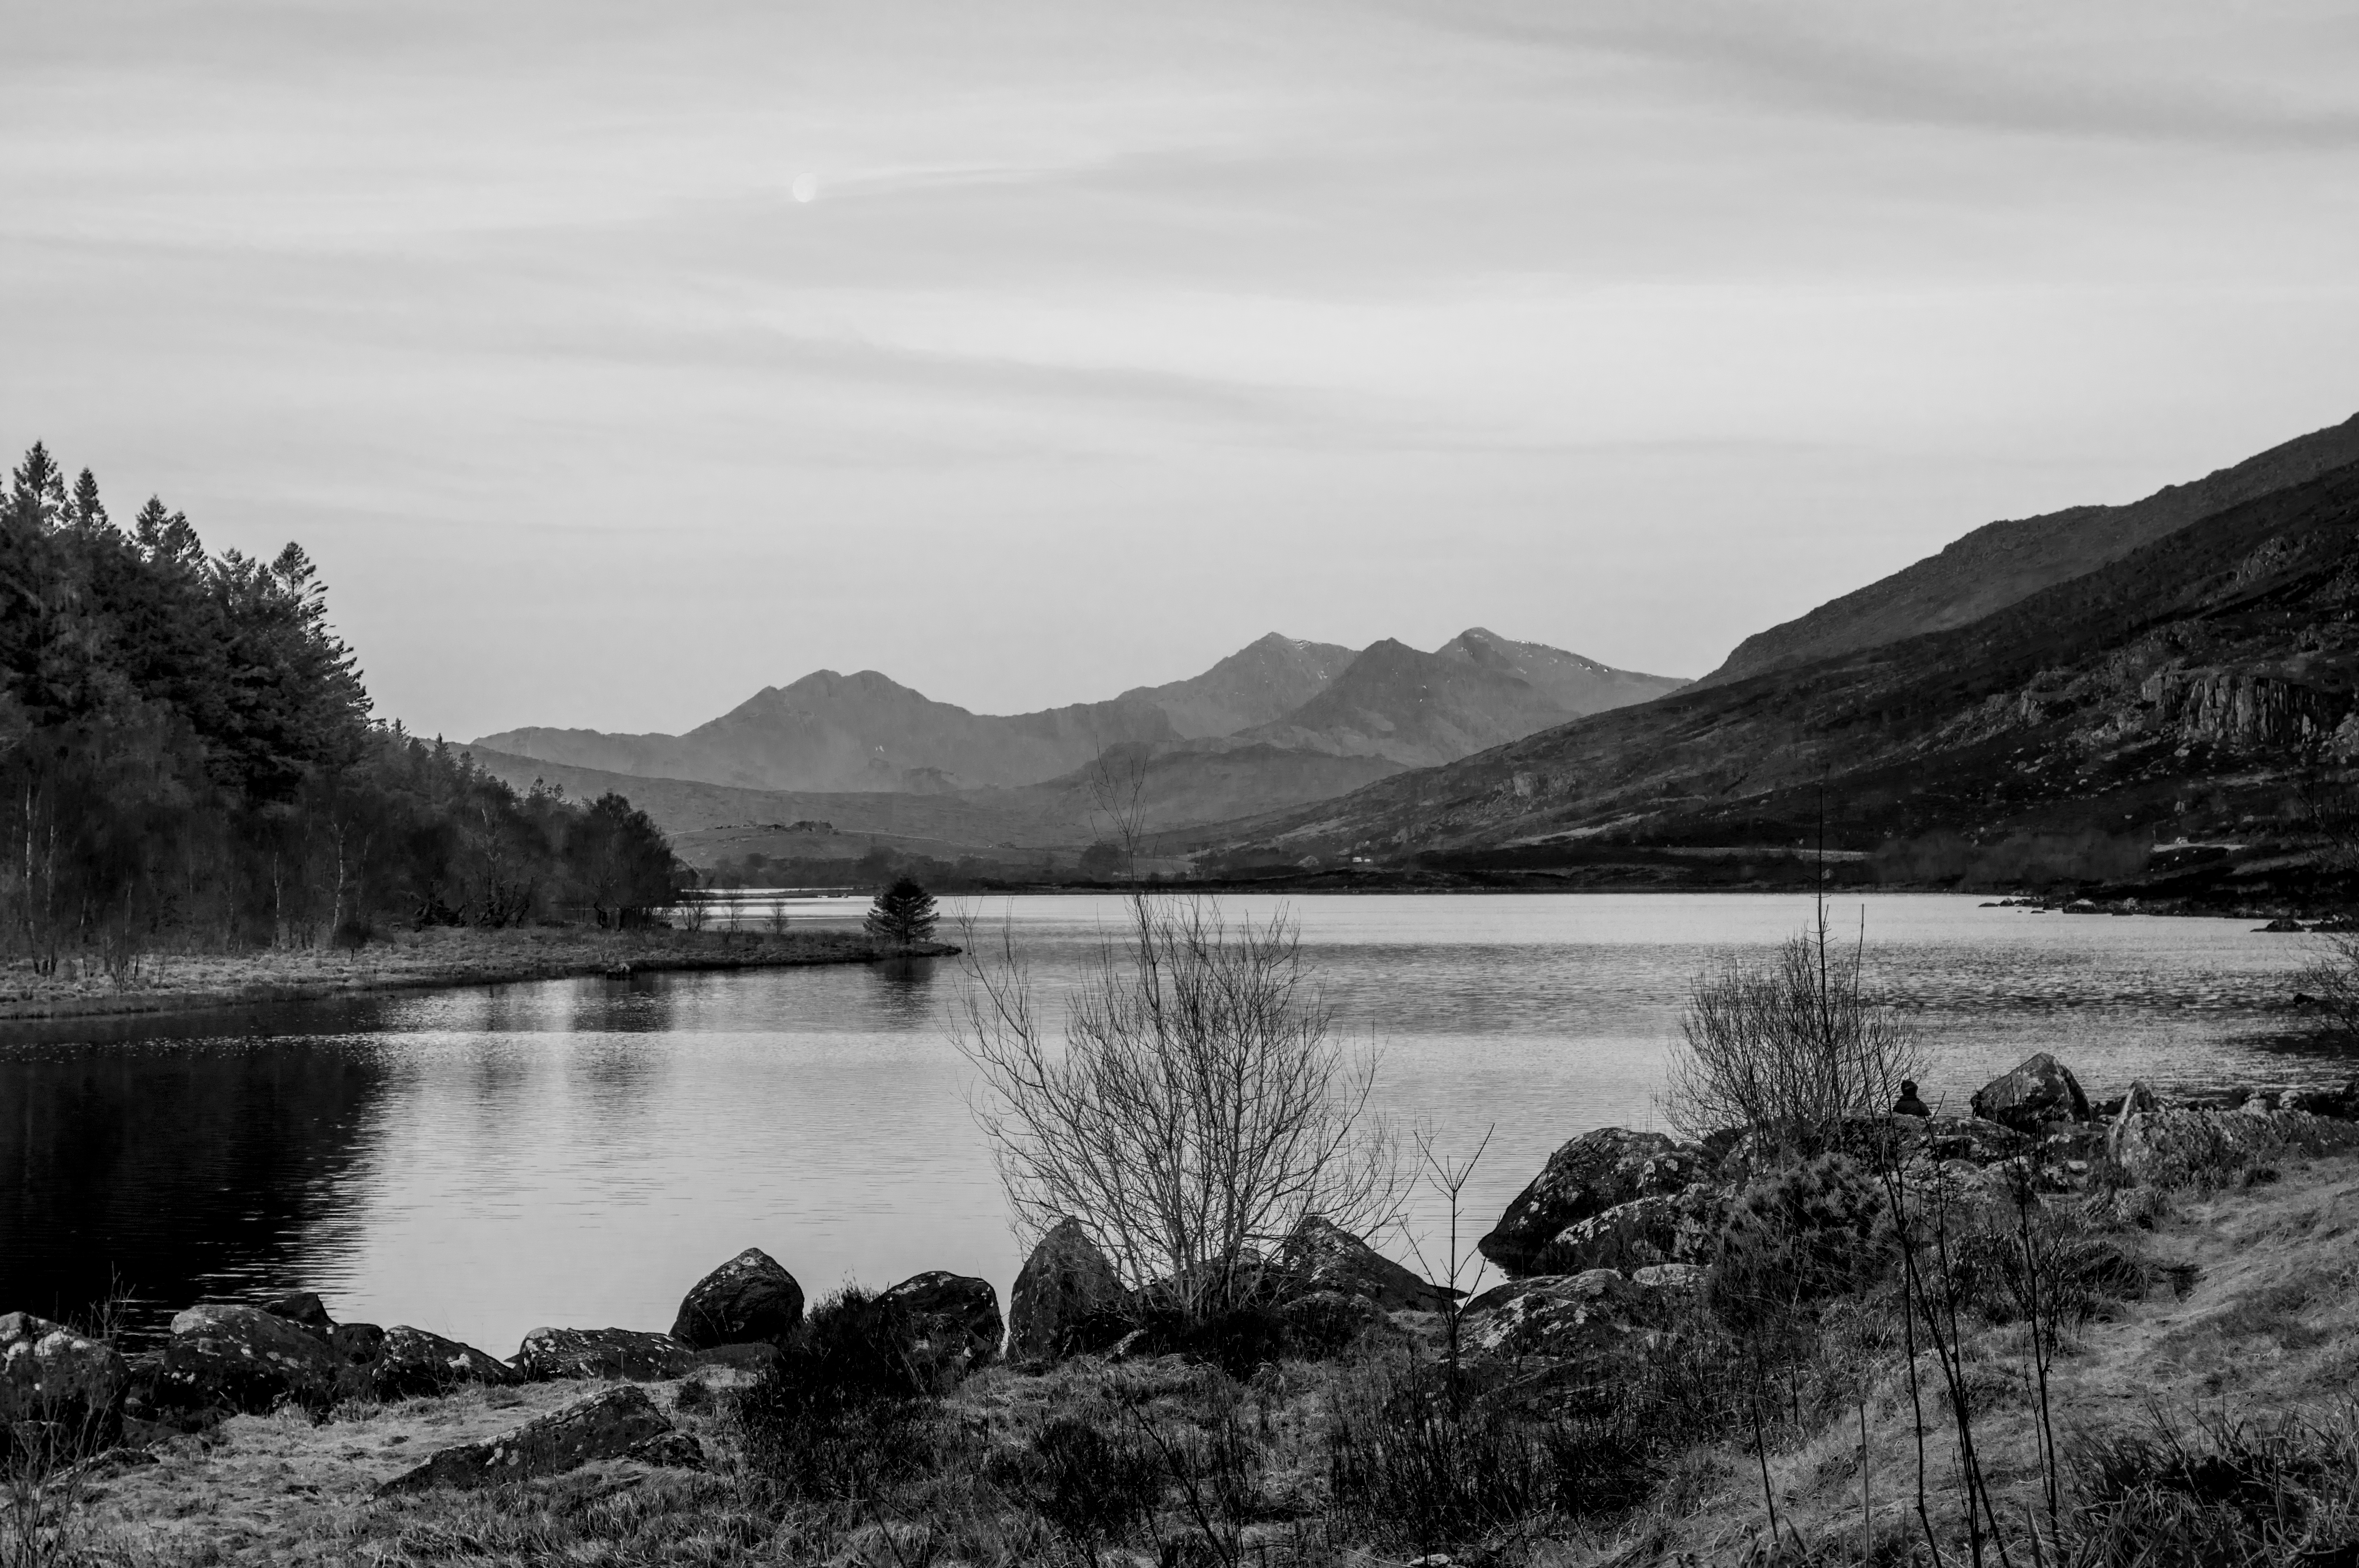 View from Plas y Brenin, Snowdonia